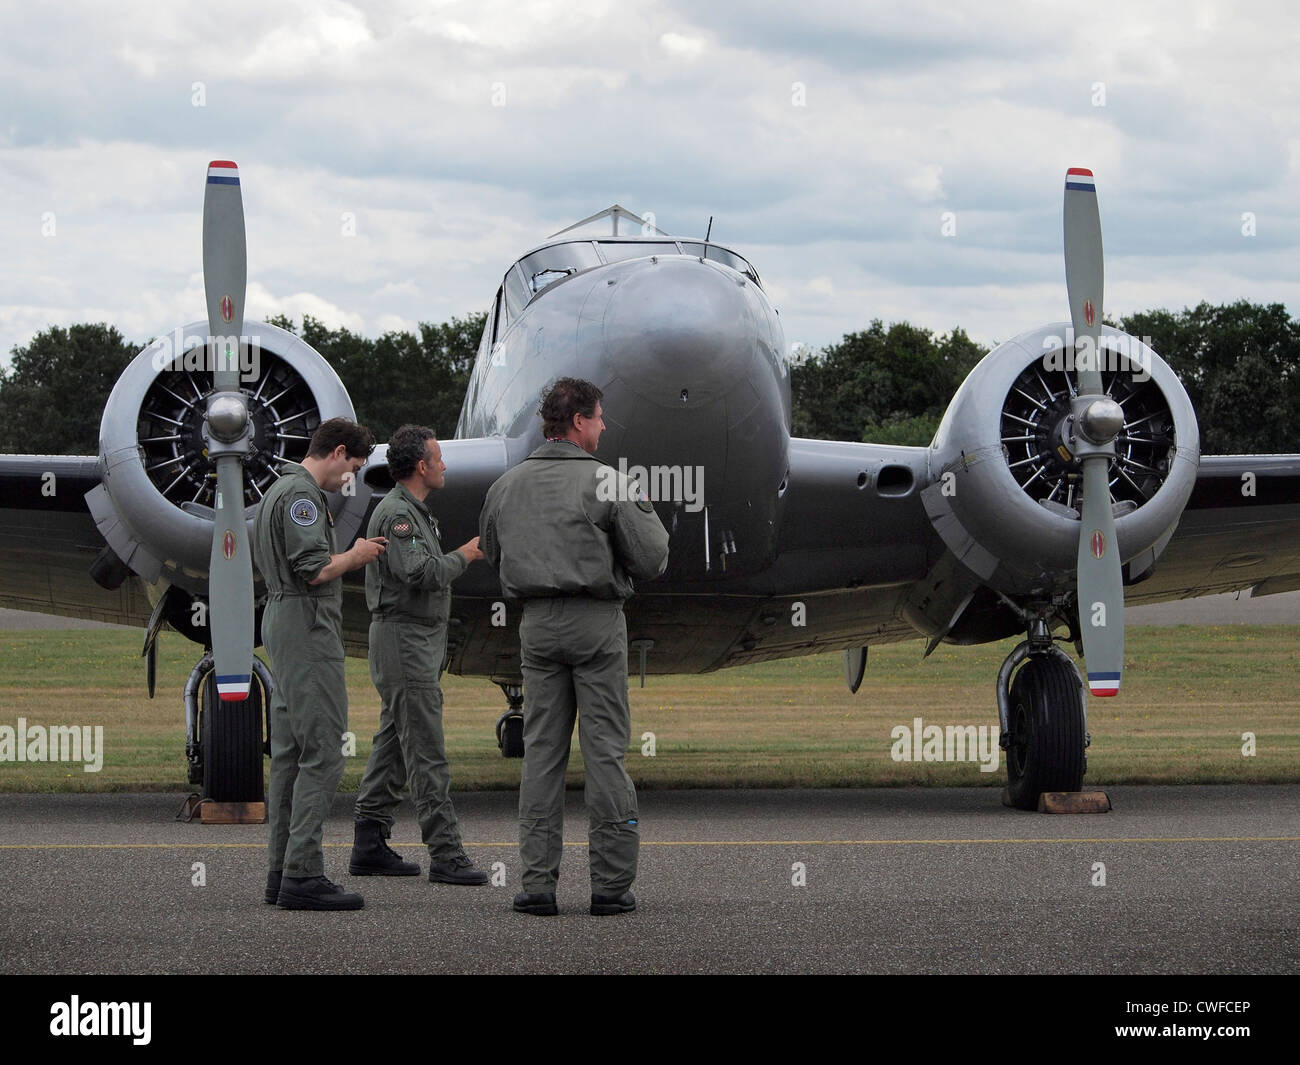 Crew standing by their classic Beechcraft B18S aeroplane at Seppe airfield, the Netherlands - Stock Image